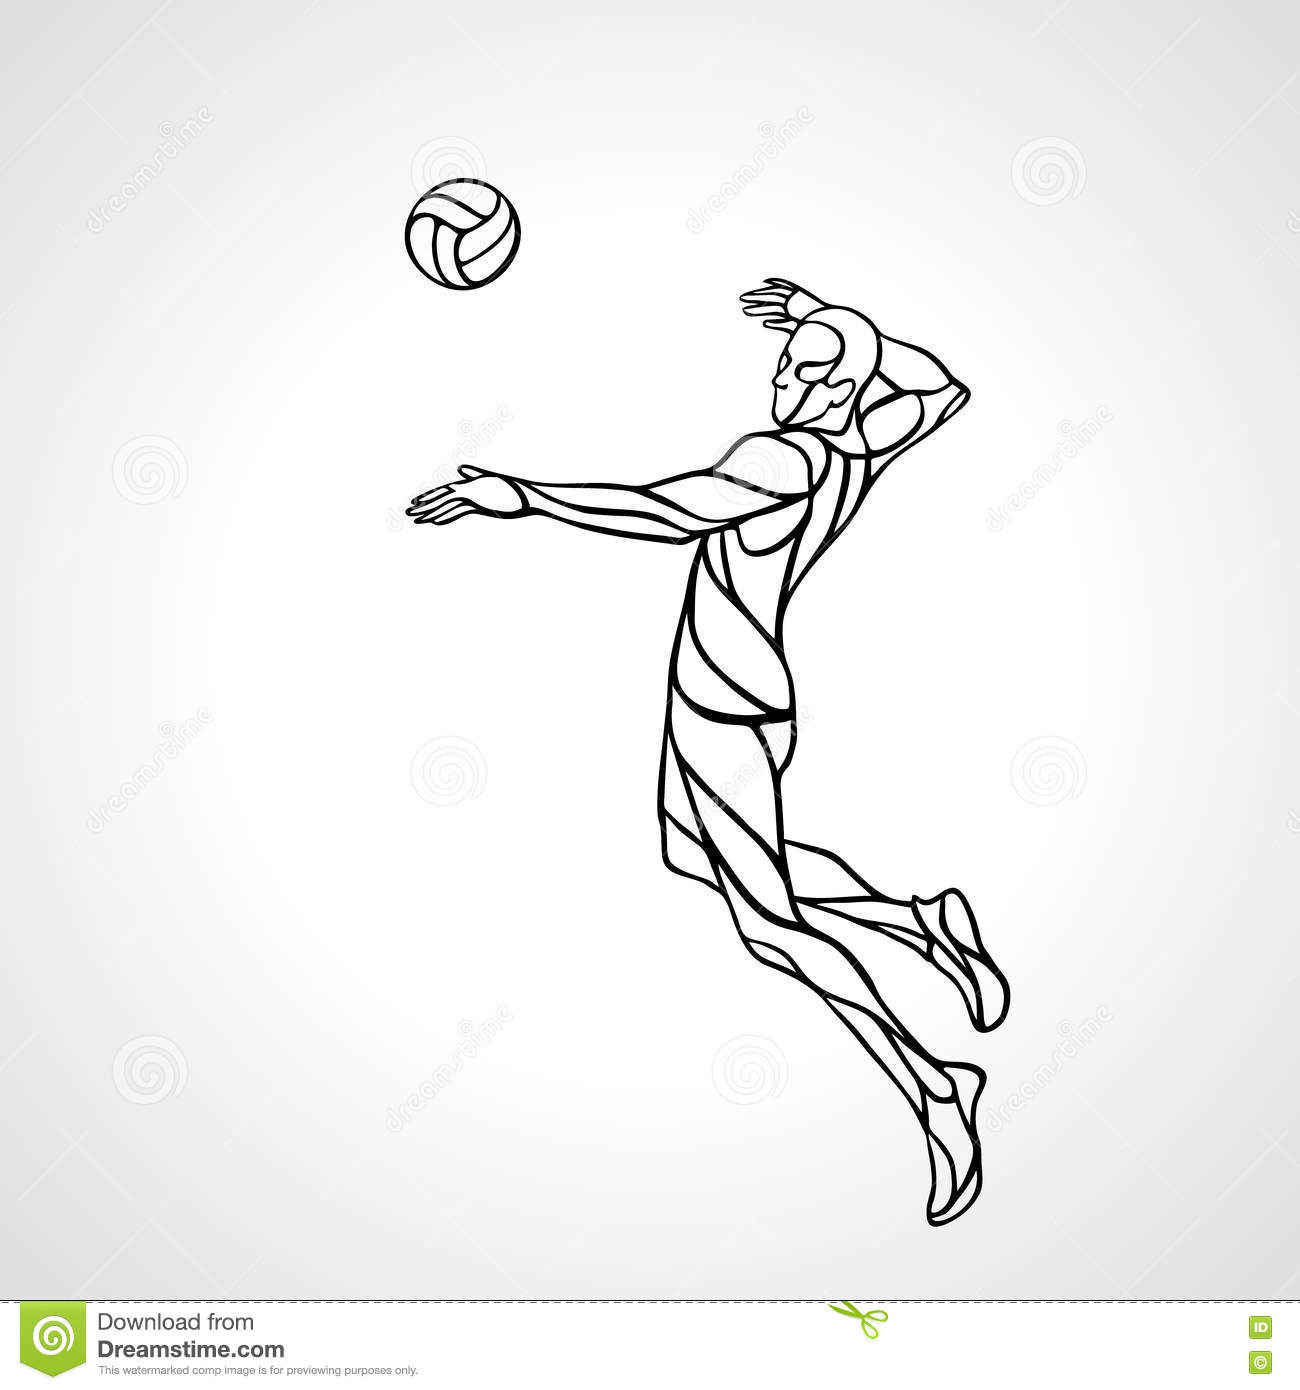 Volleyball attacker player outline silhouette. Eps vector